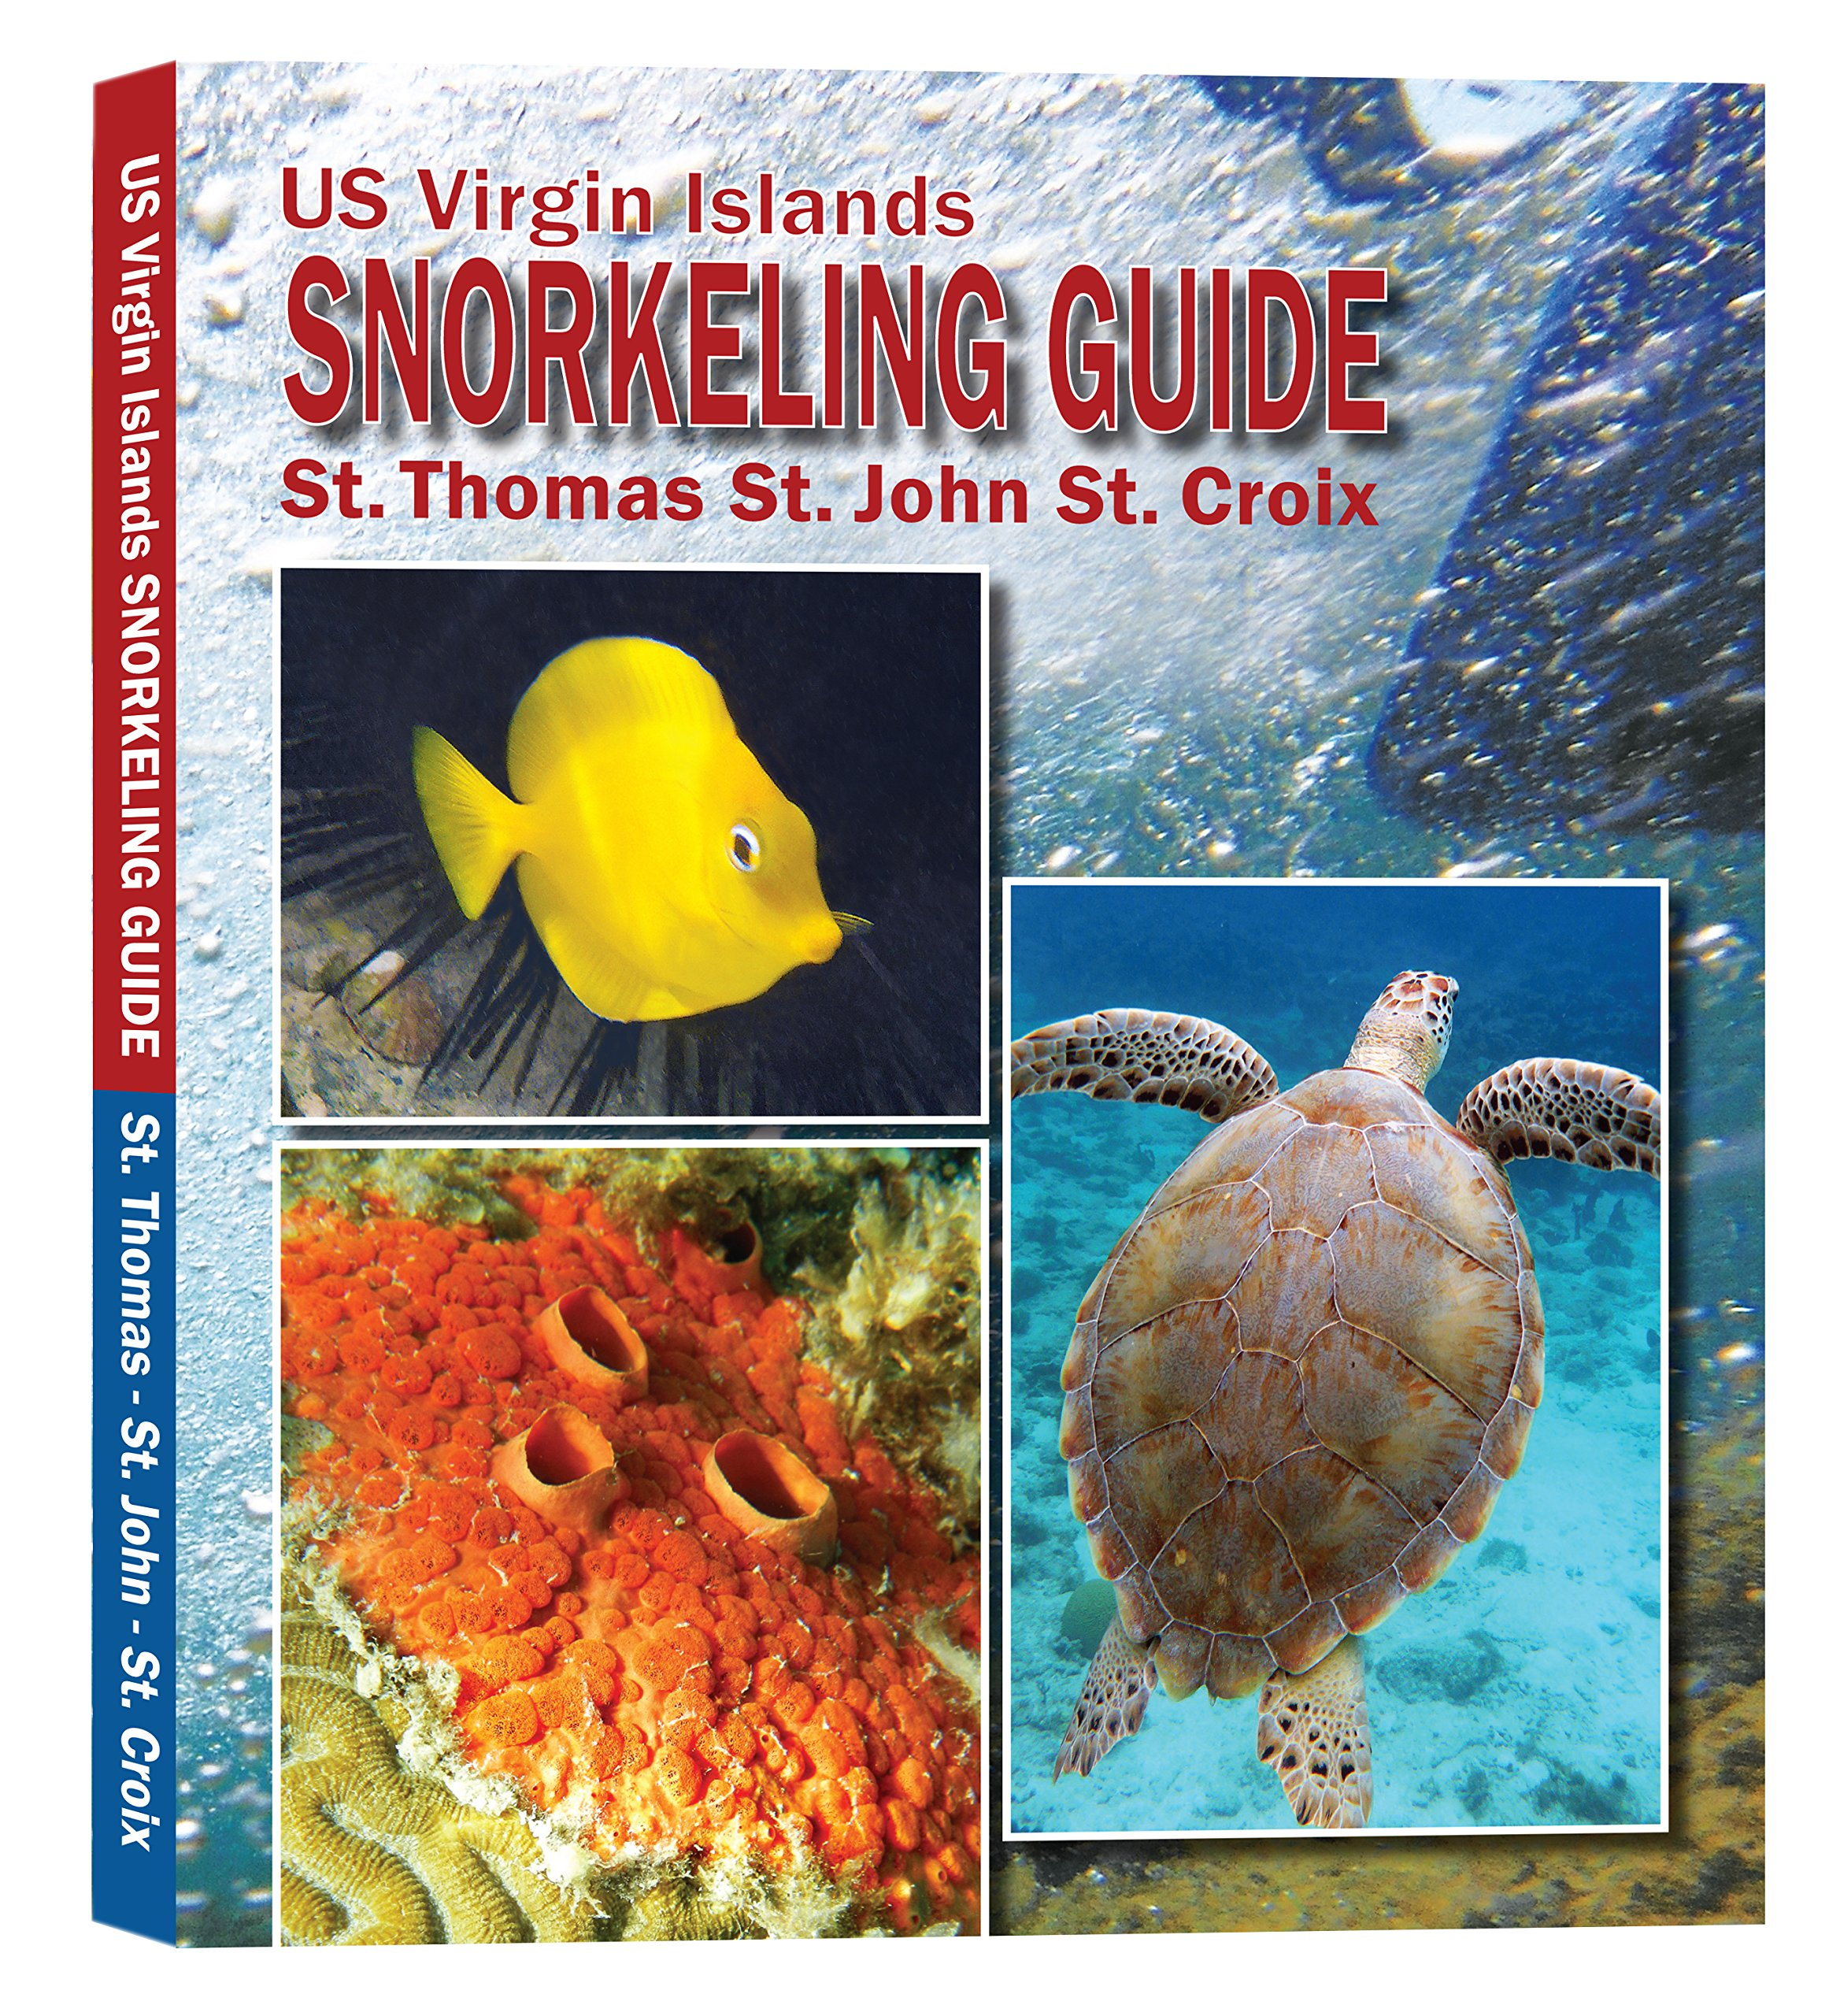 US Virgin Islands Snorkeling Guide product image